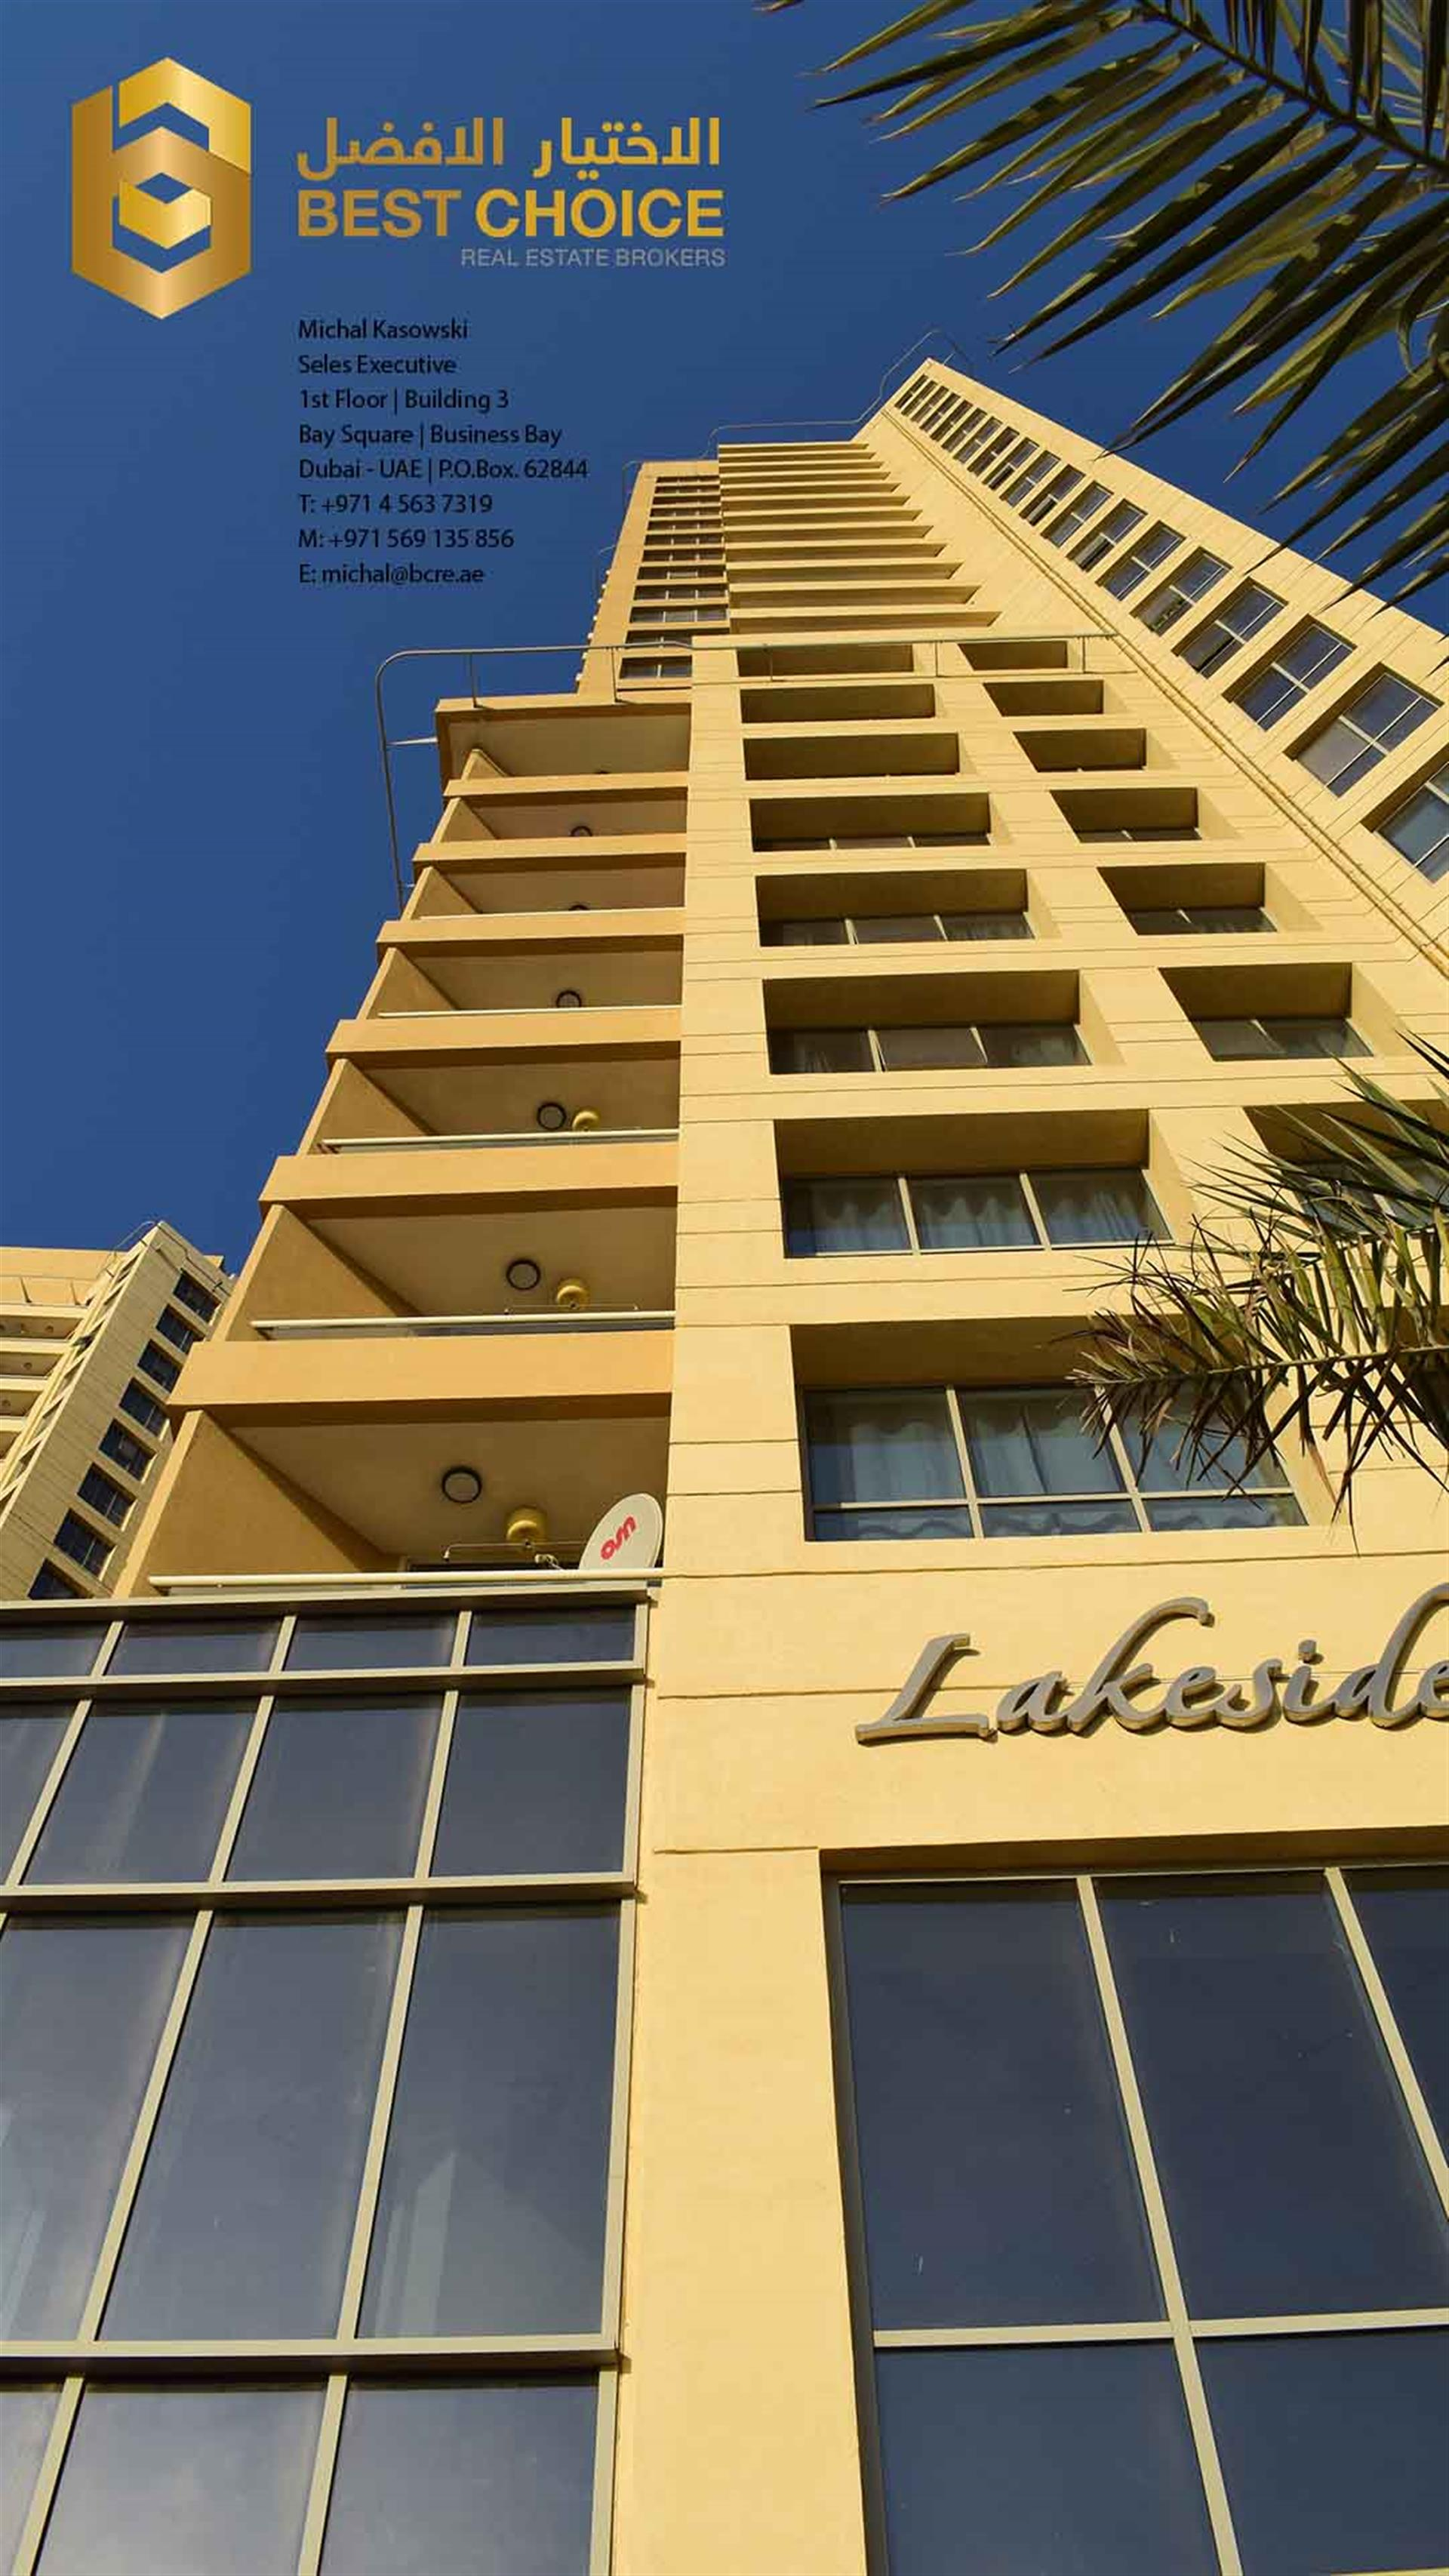 Lakeside Tower